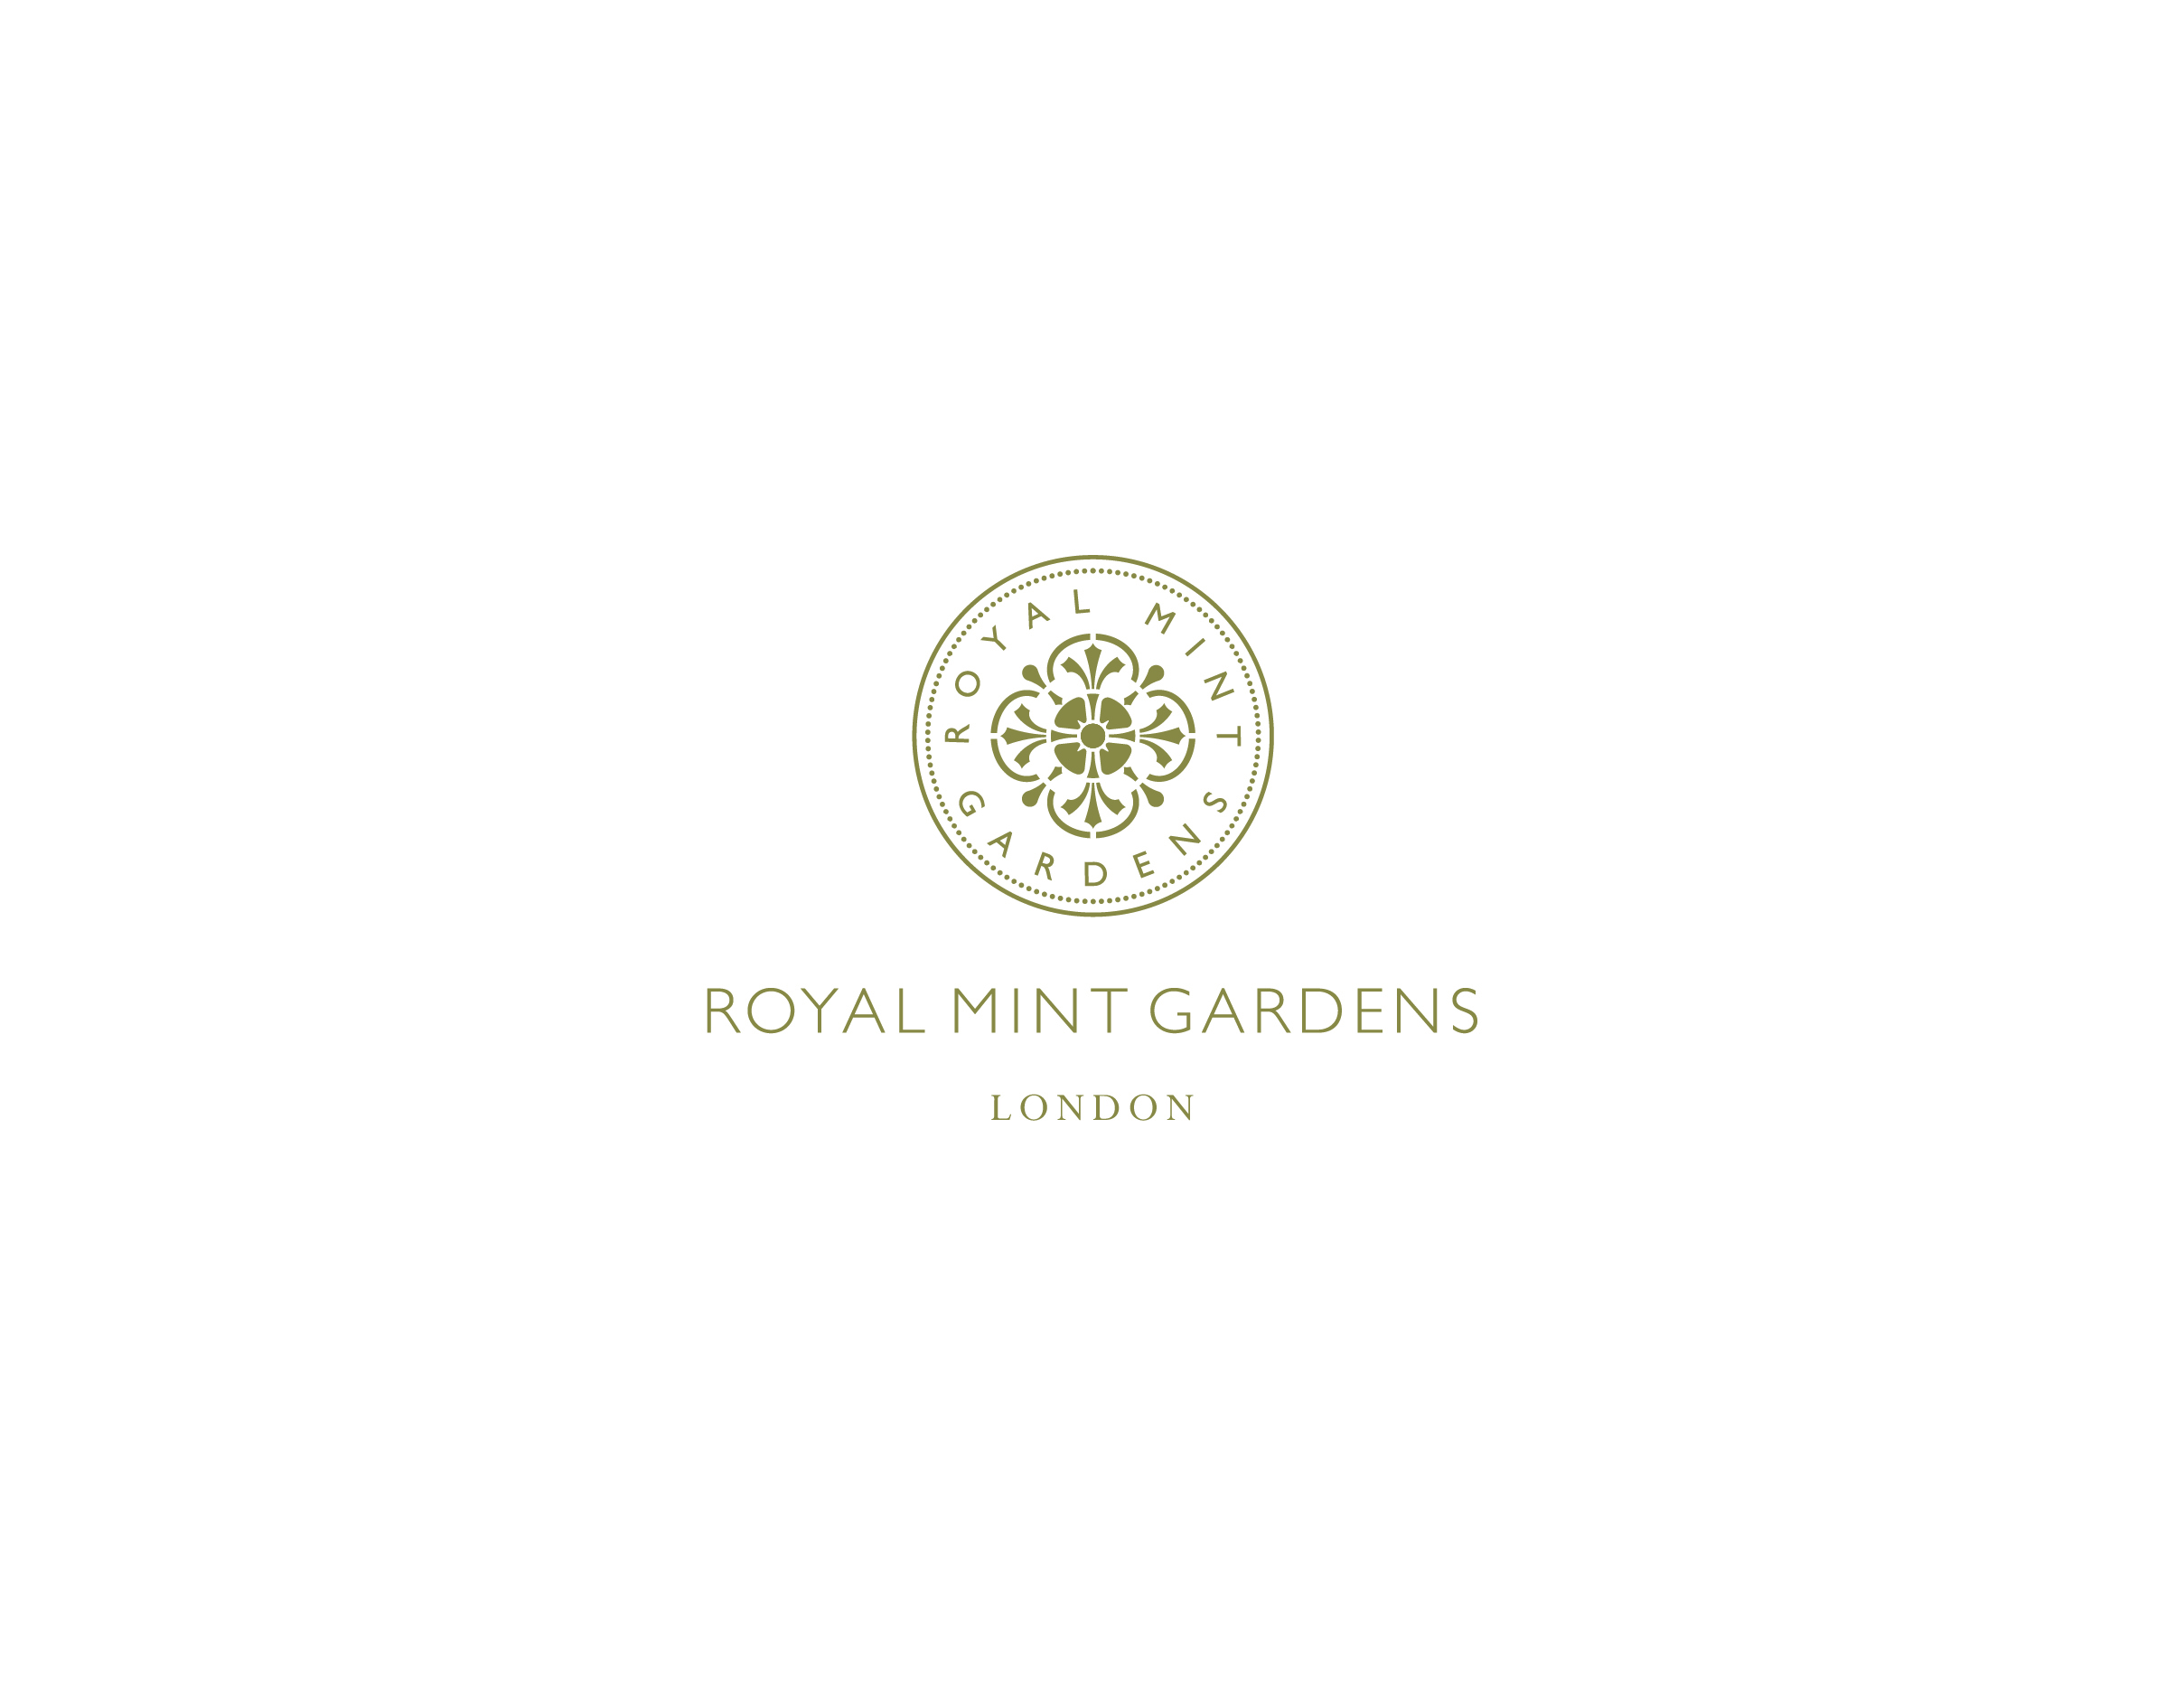 Royal Mint Gardens